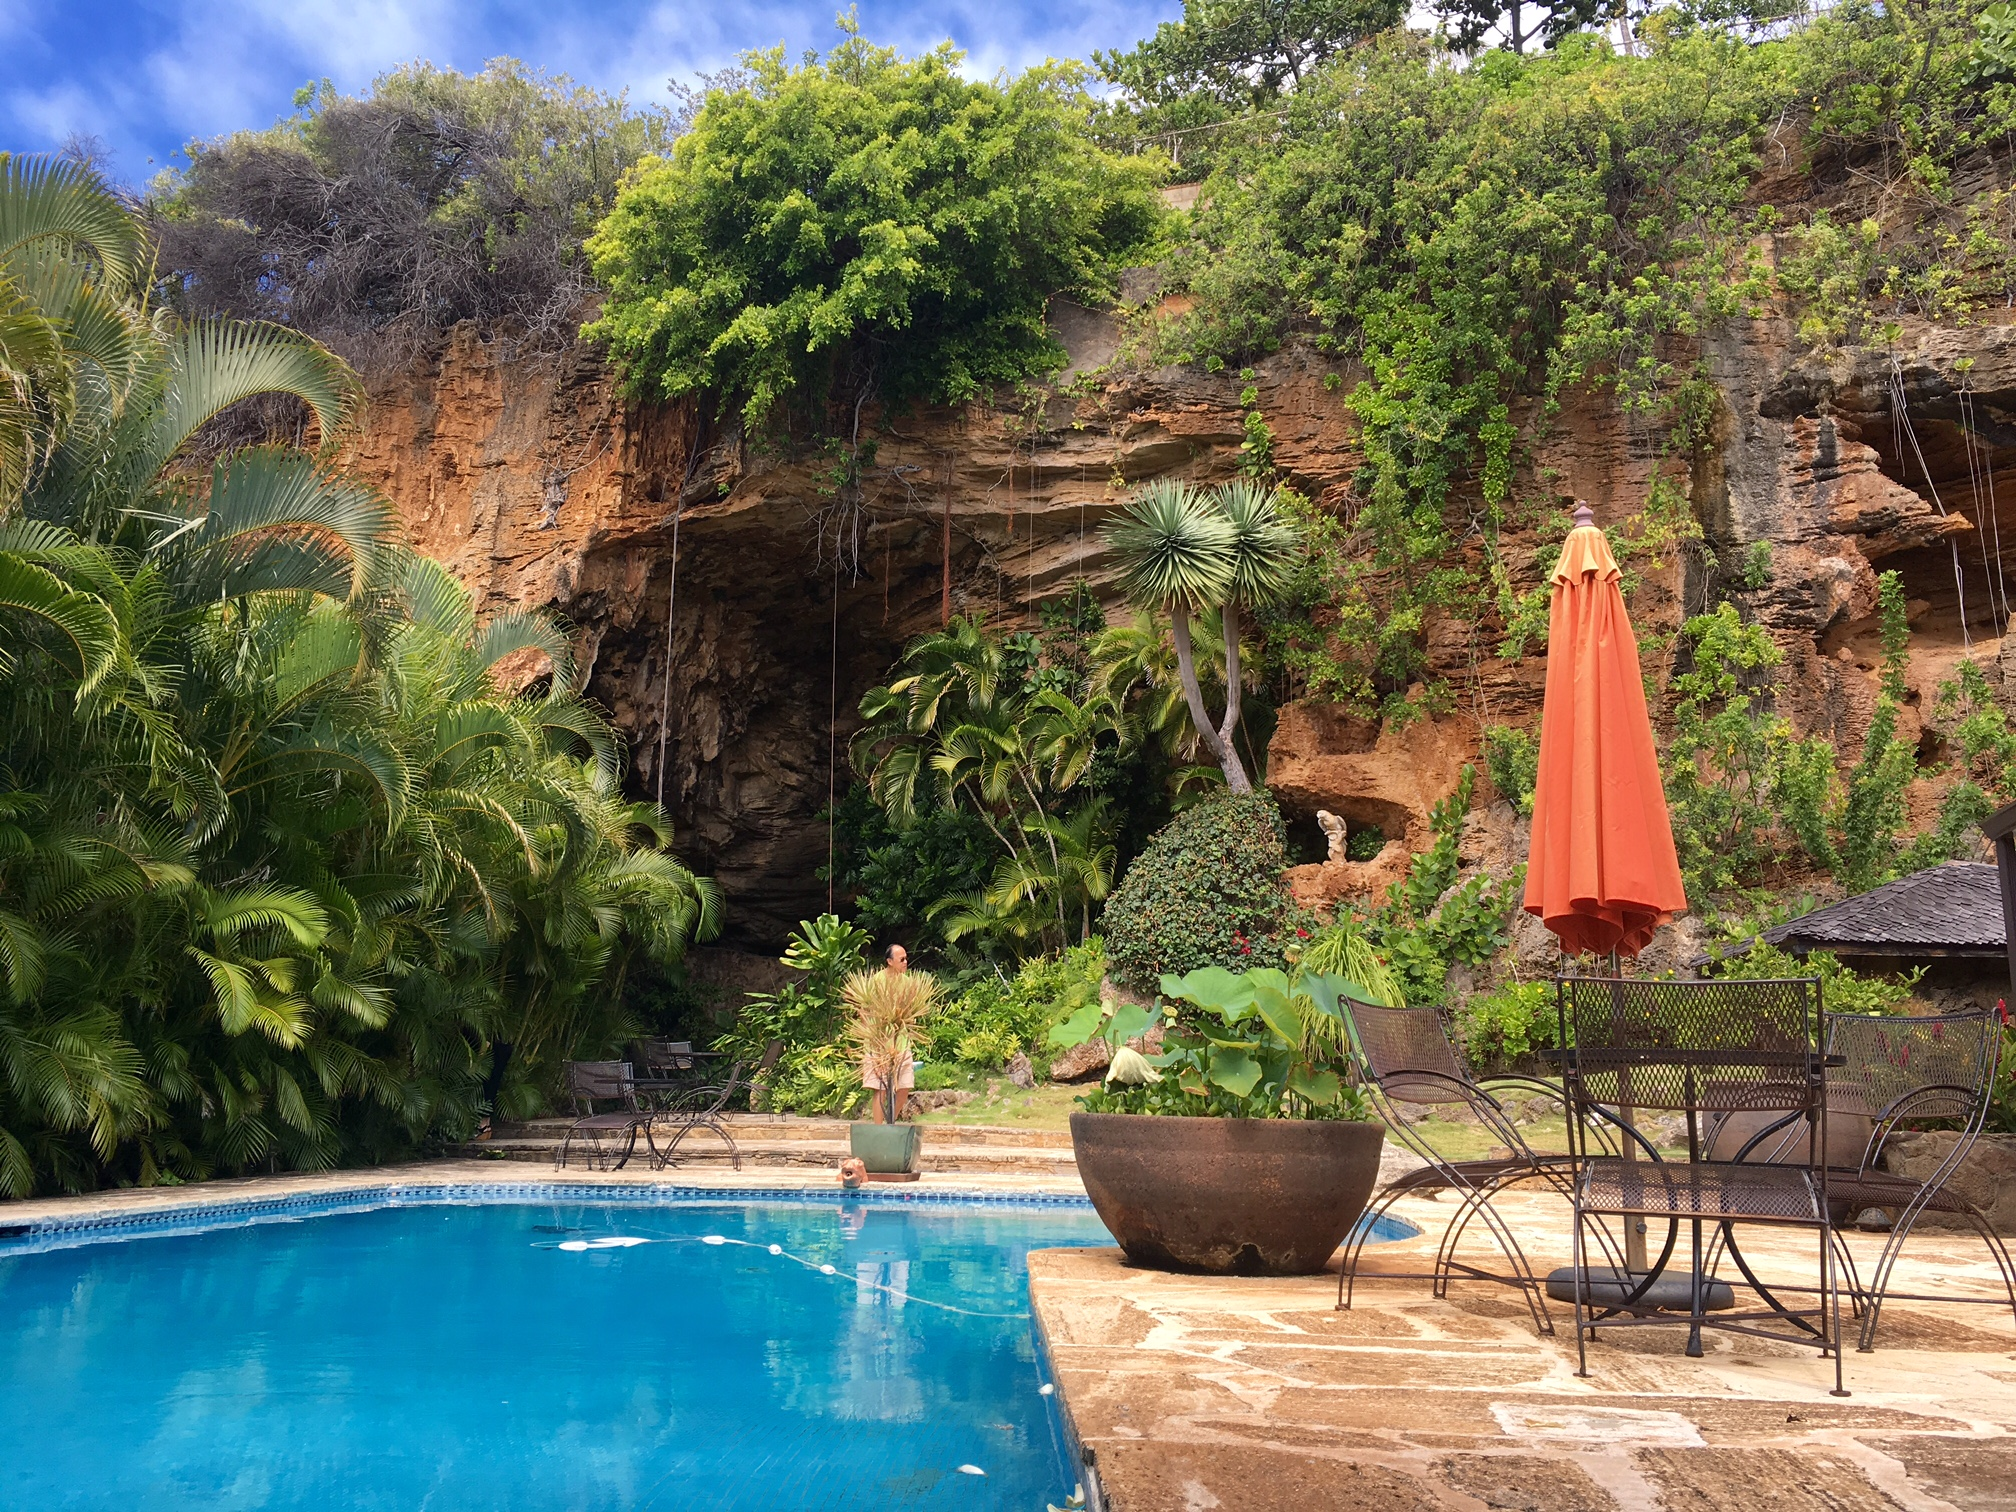 A 4/4 house in Kahala with your own cave. Amazing grounds asking $3M.